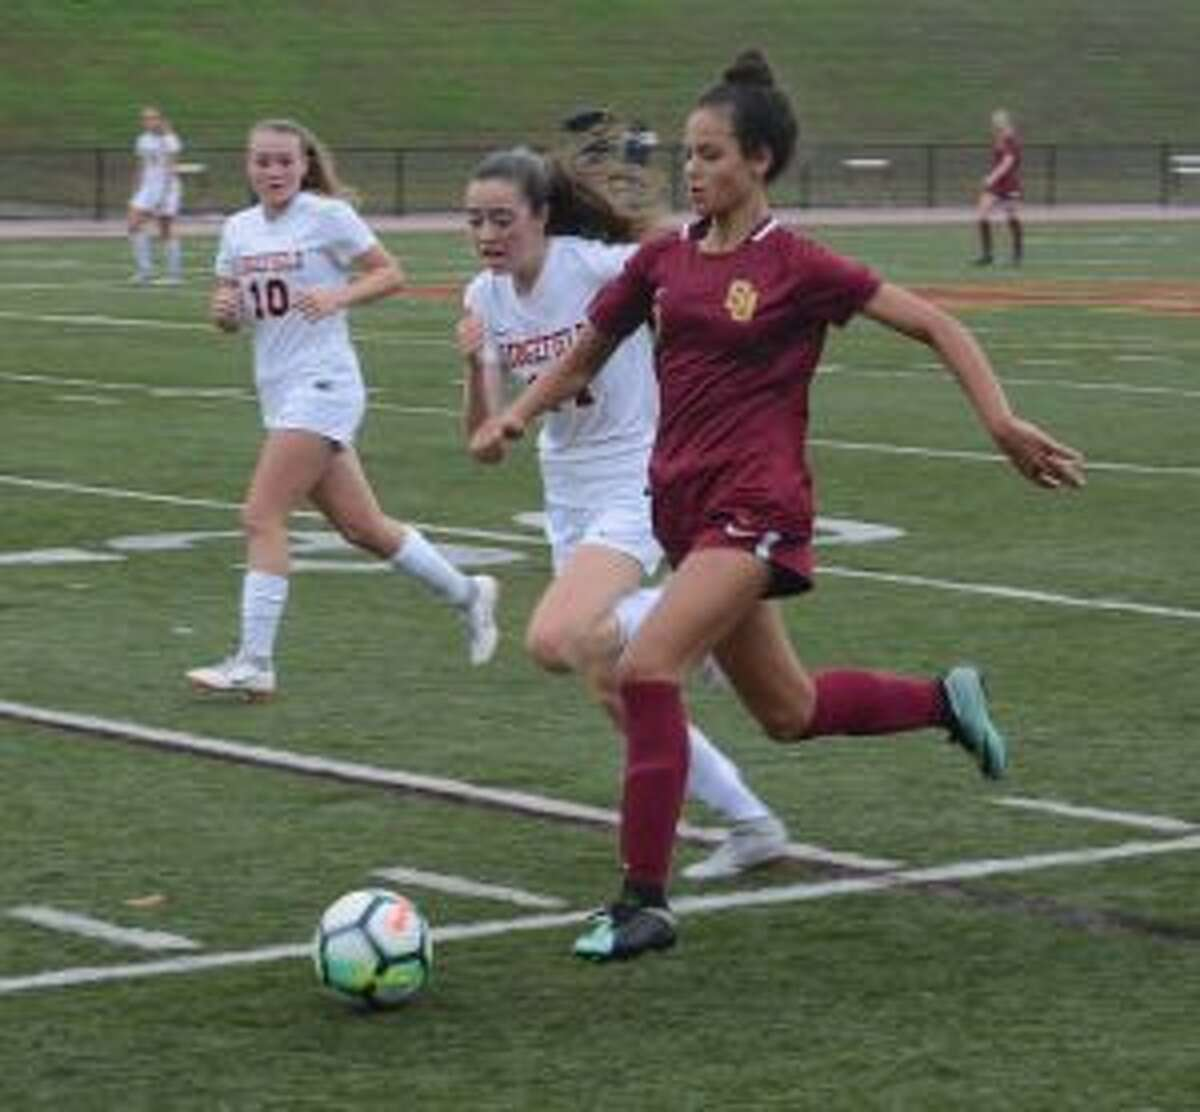 Sophia Lowenburg makes a run up the sideline. - Andy Hutchison photo